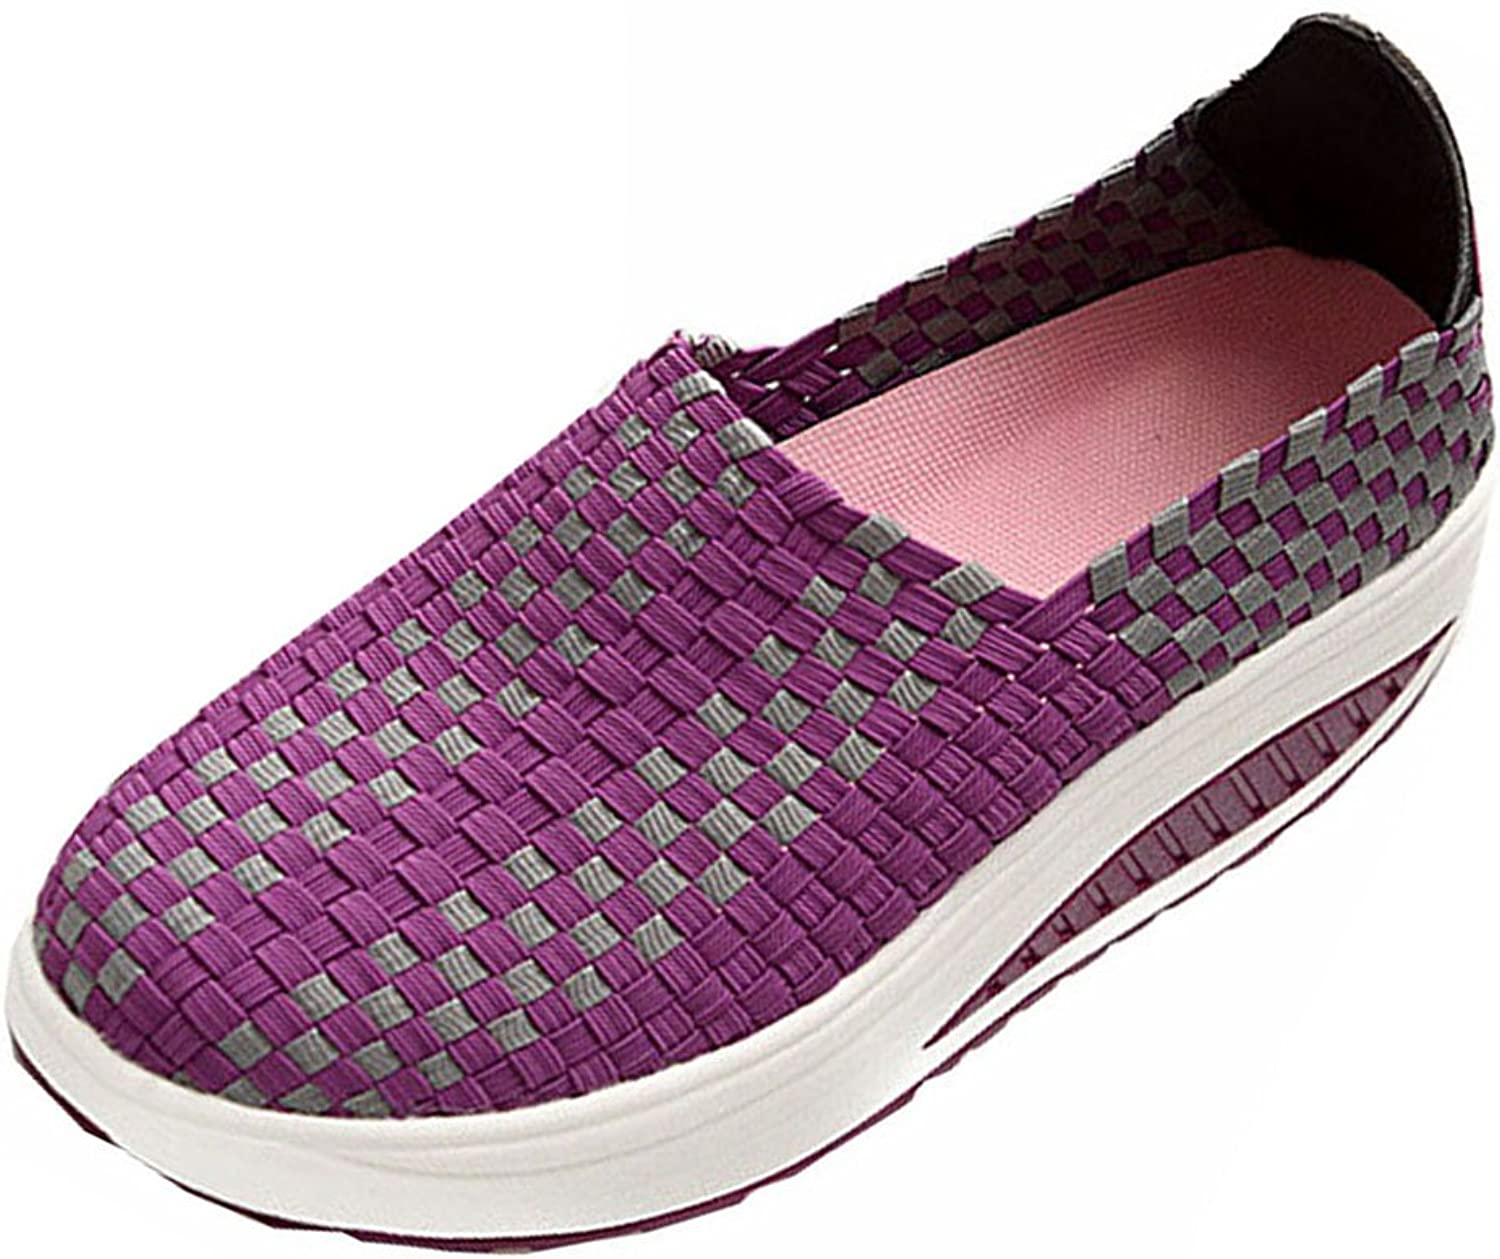 Summer shoes Women's Sneakers Sport Fashion Running Sneakers for Women Swing Wedges shoes